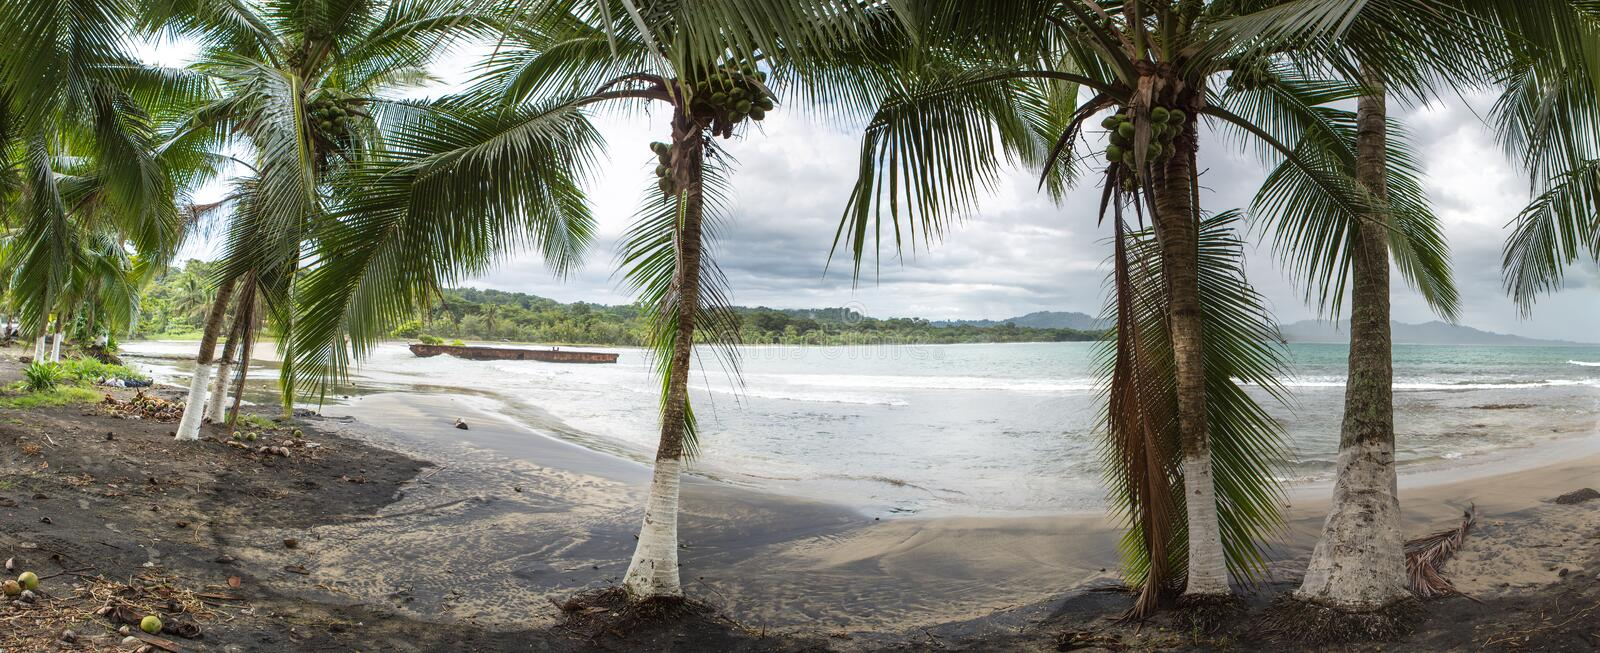 Empty beach in Puerto Viejo, Costa Rica stock photography